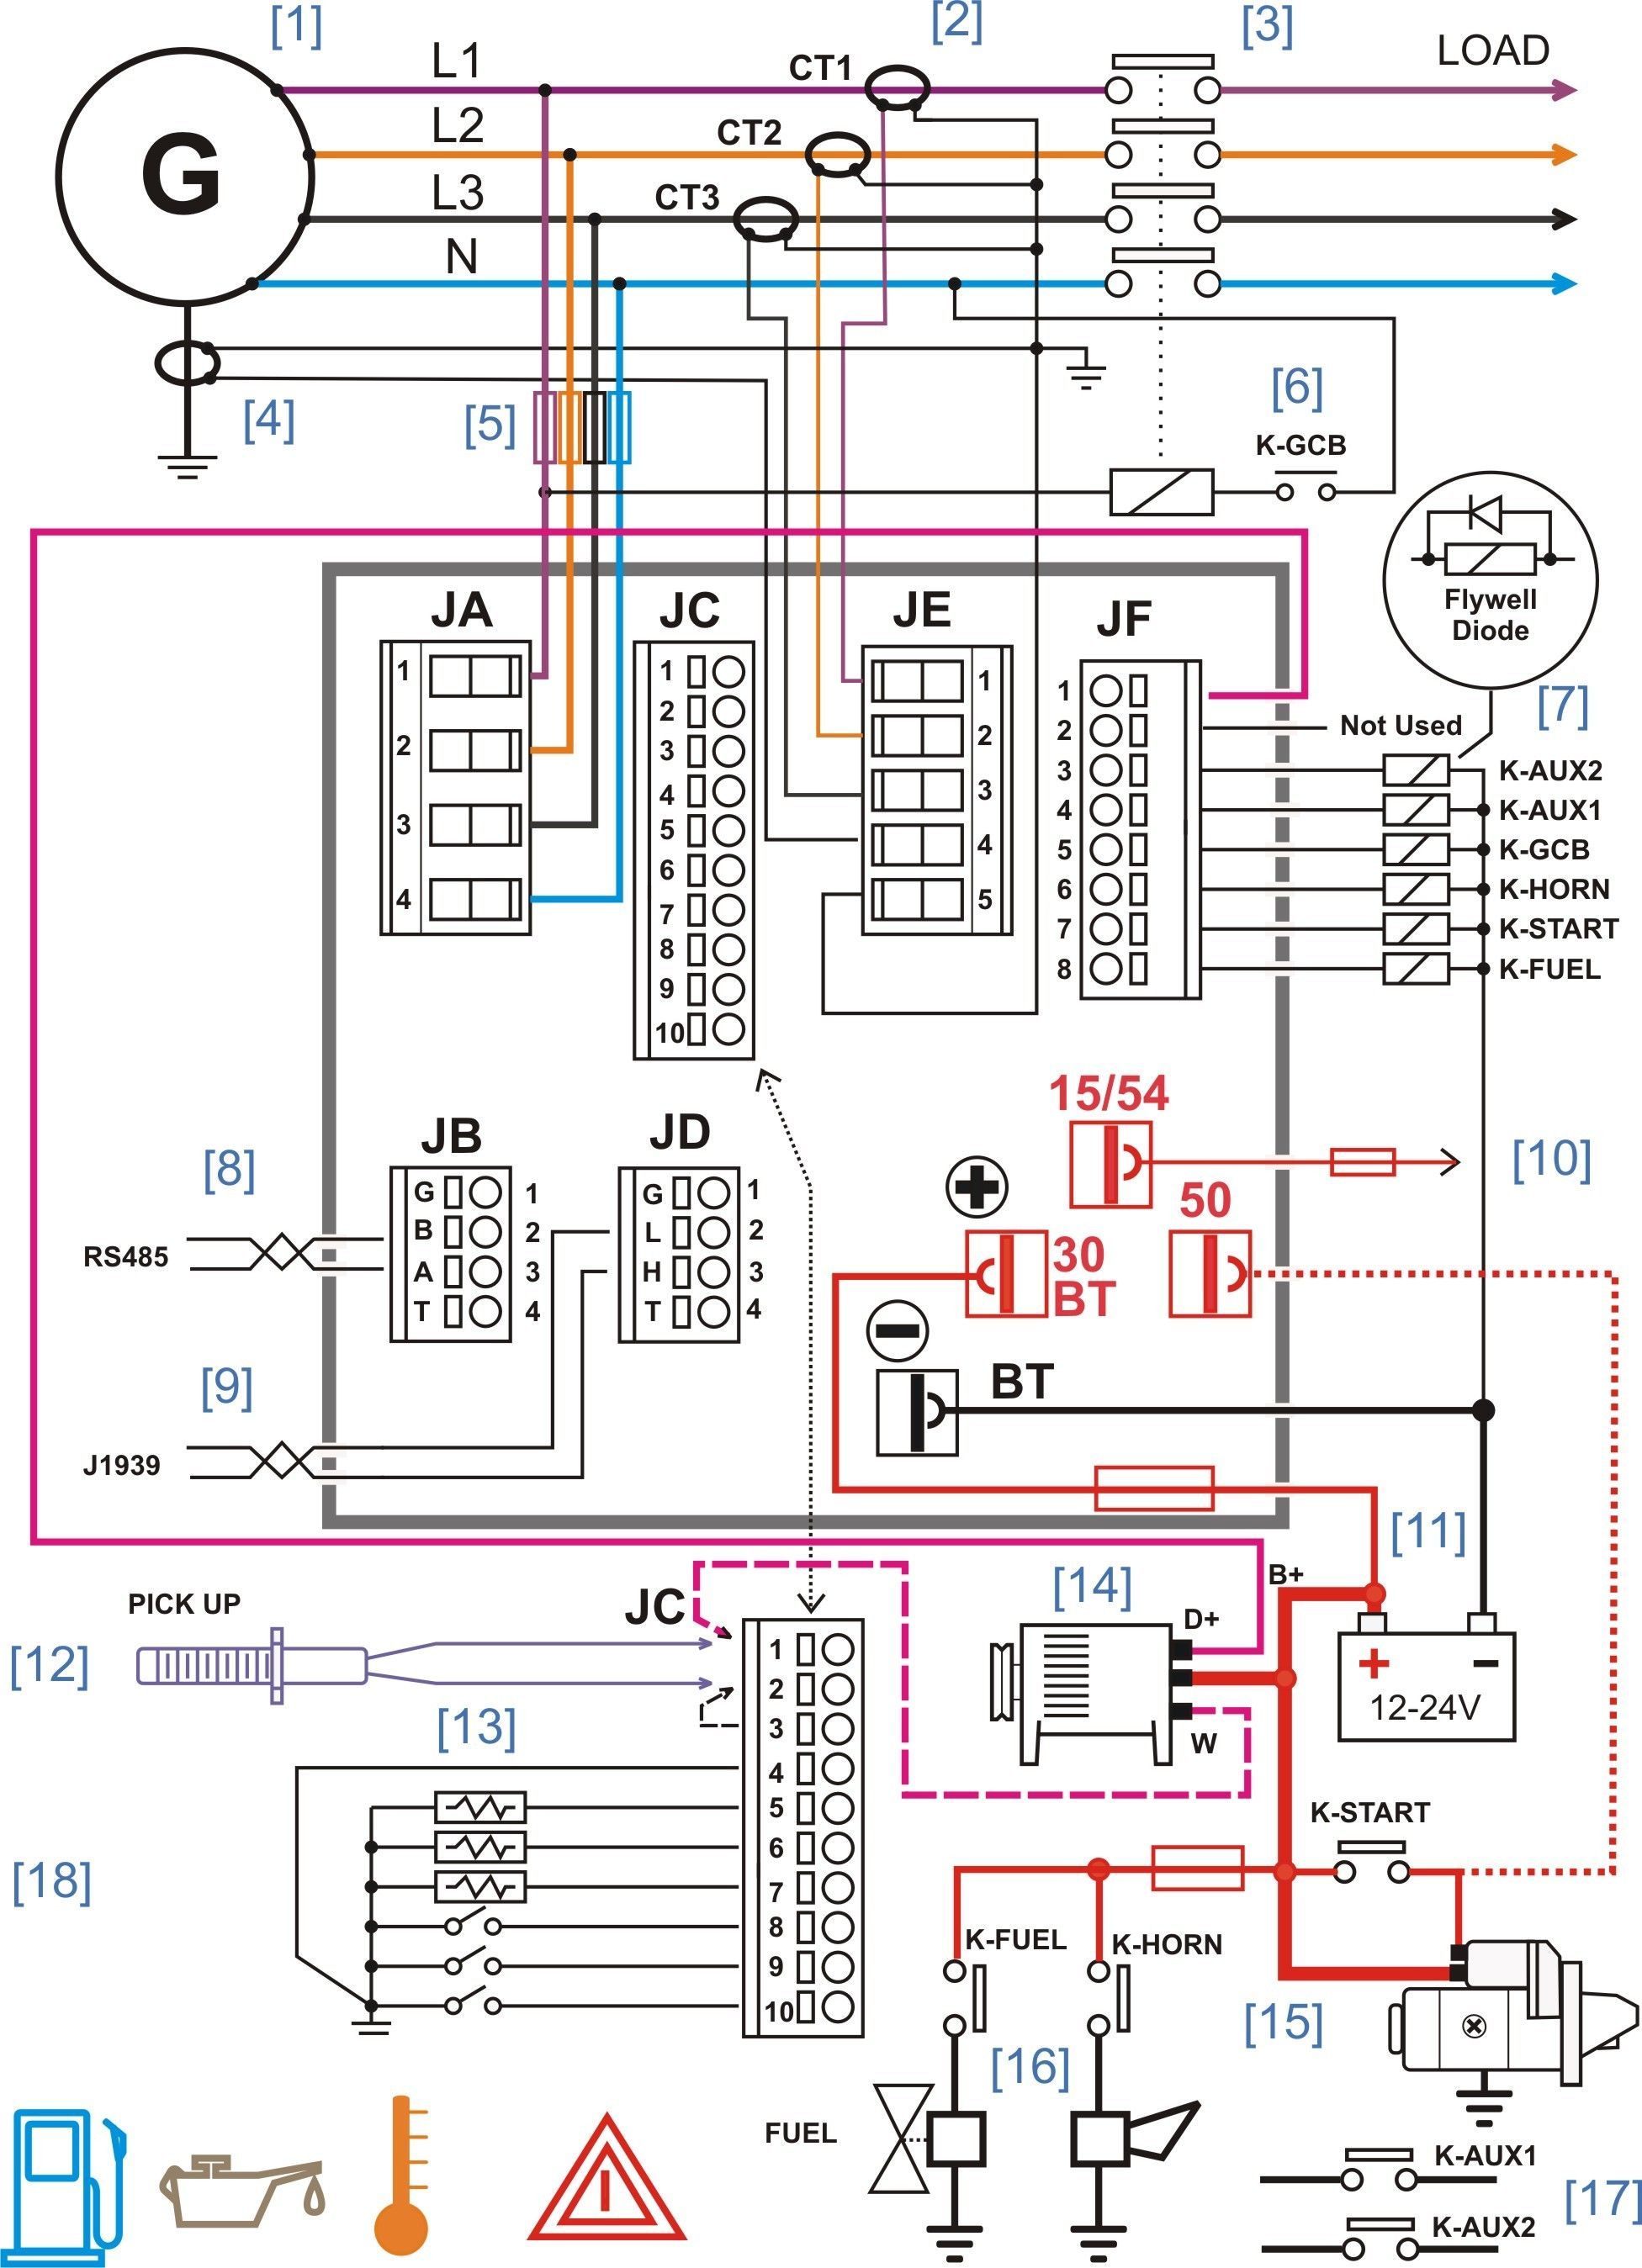 How To Understand Wiring Diagrams For Cars